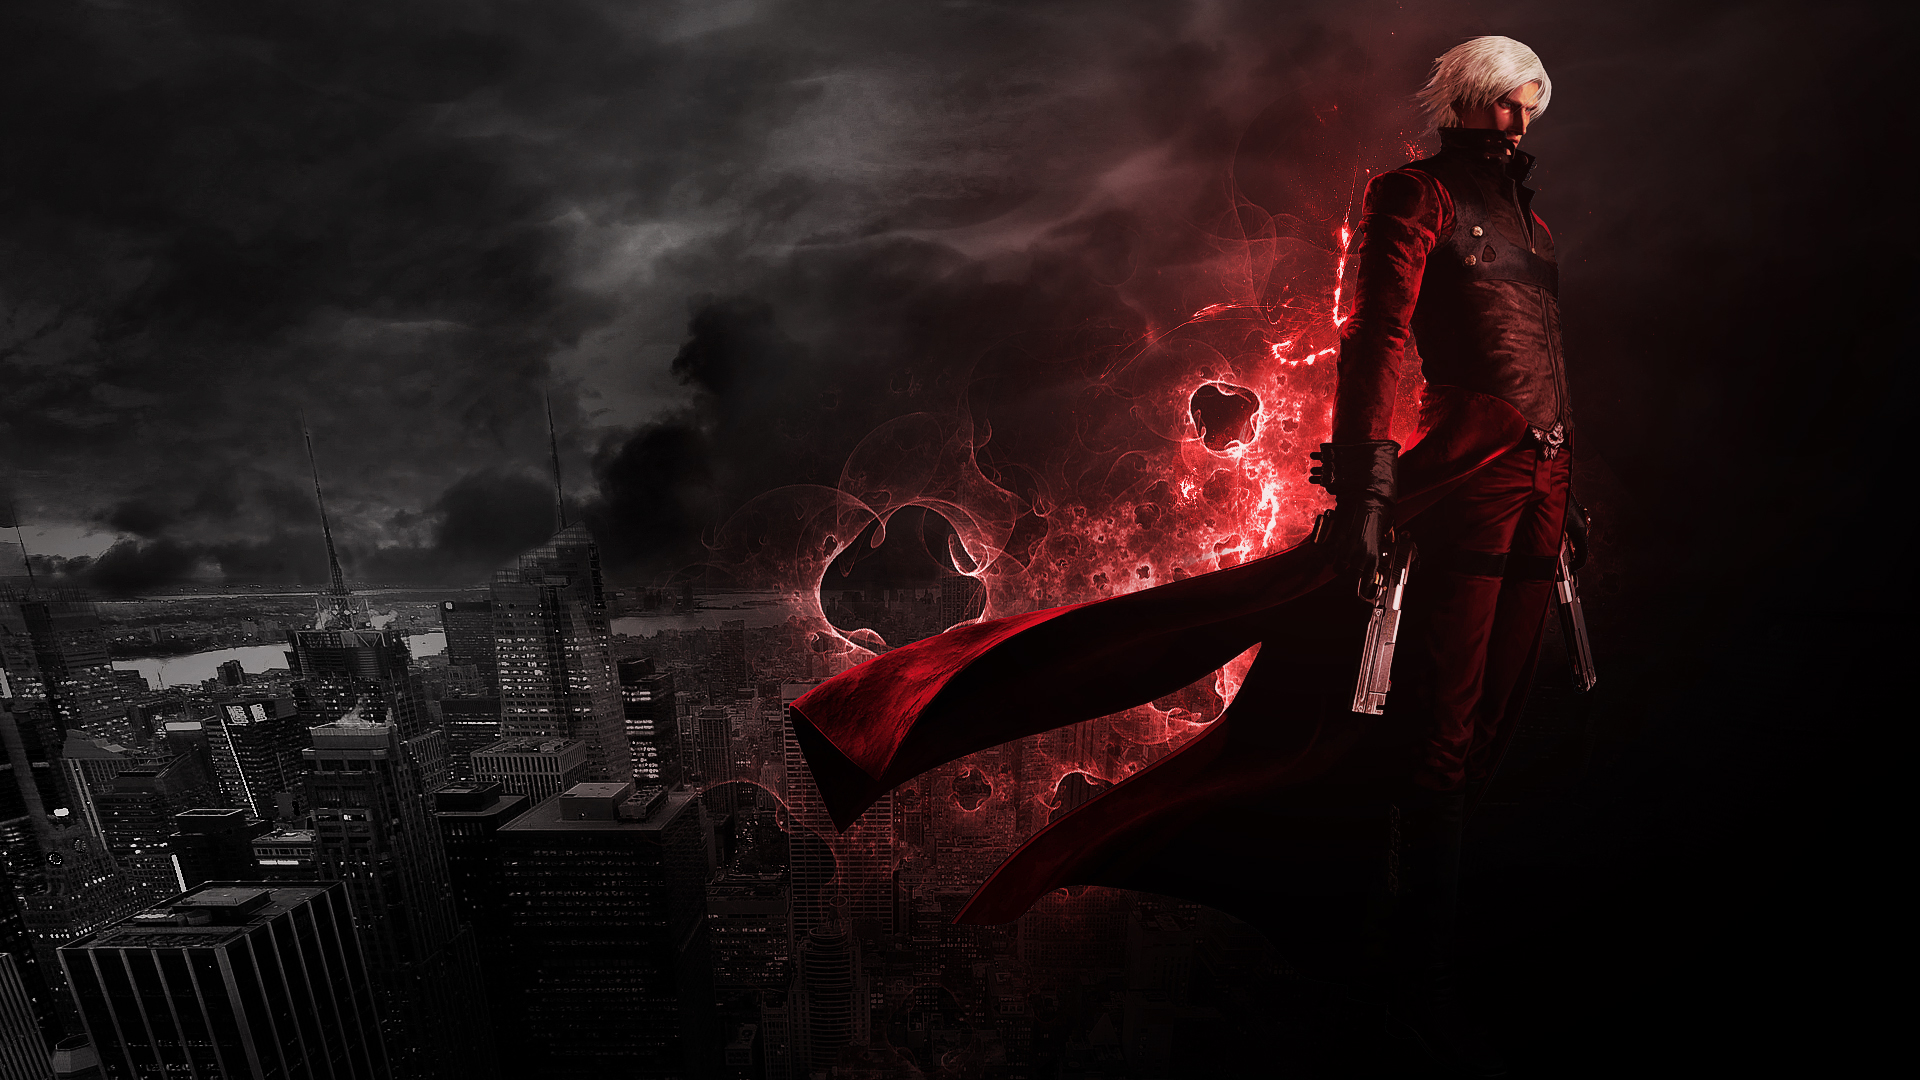 wallpapers devil may cry - photo #11